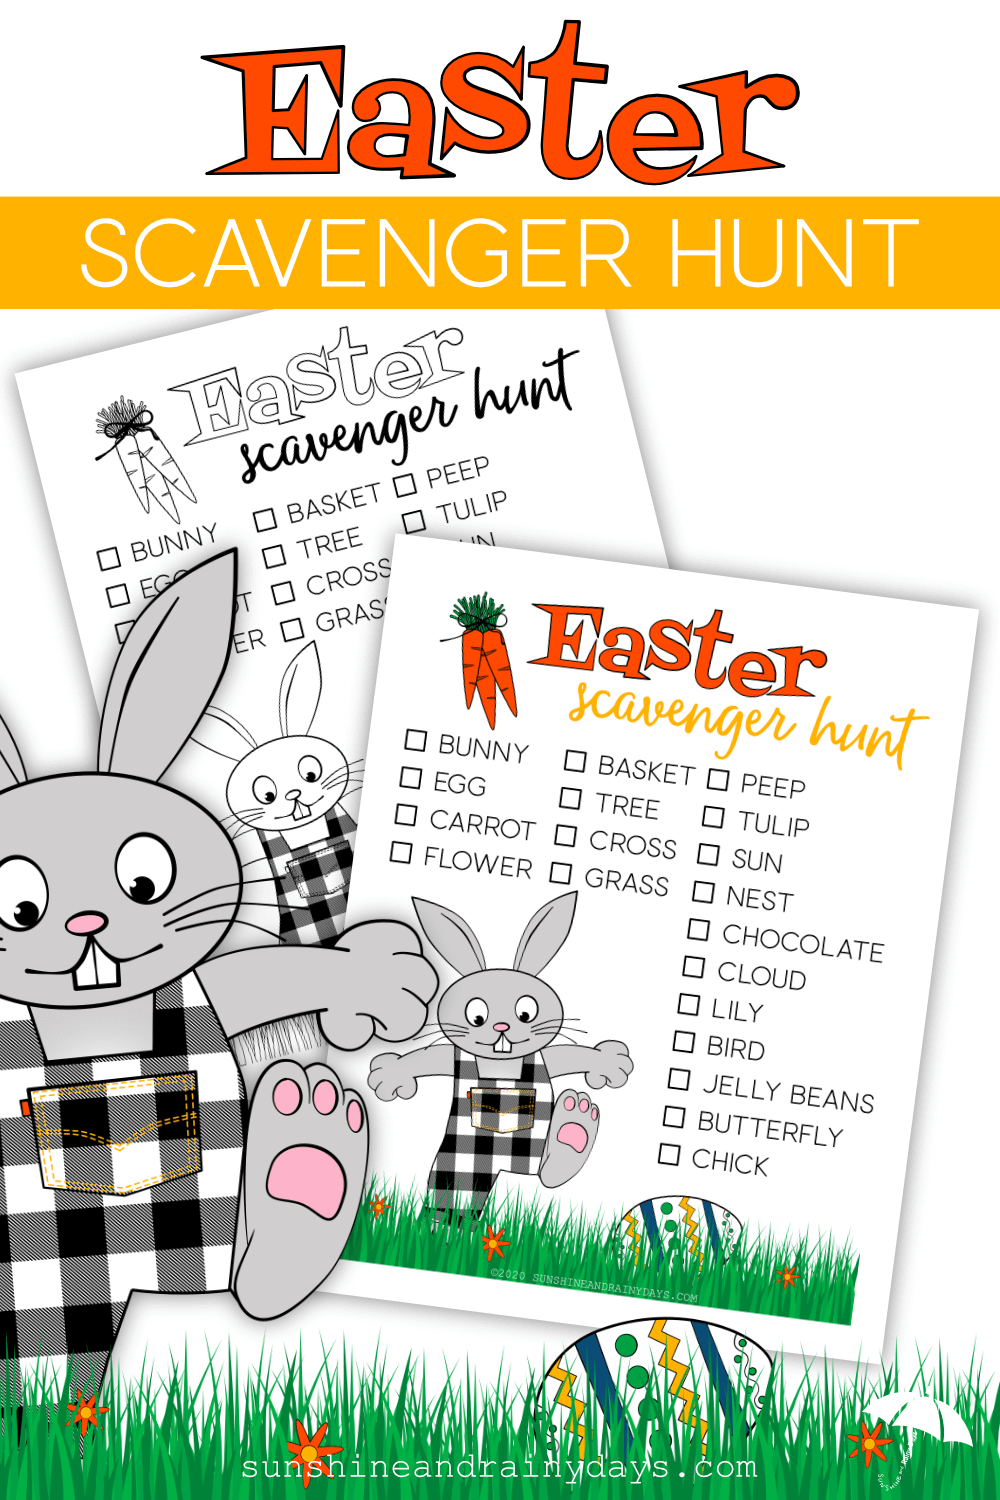 Easter Scavenger Hunt (PDF)